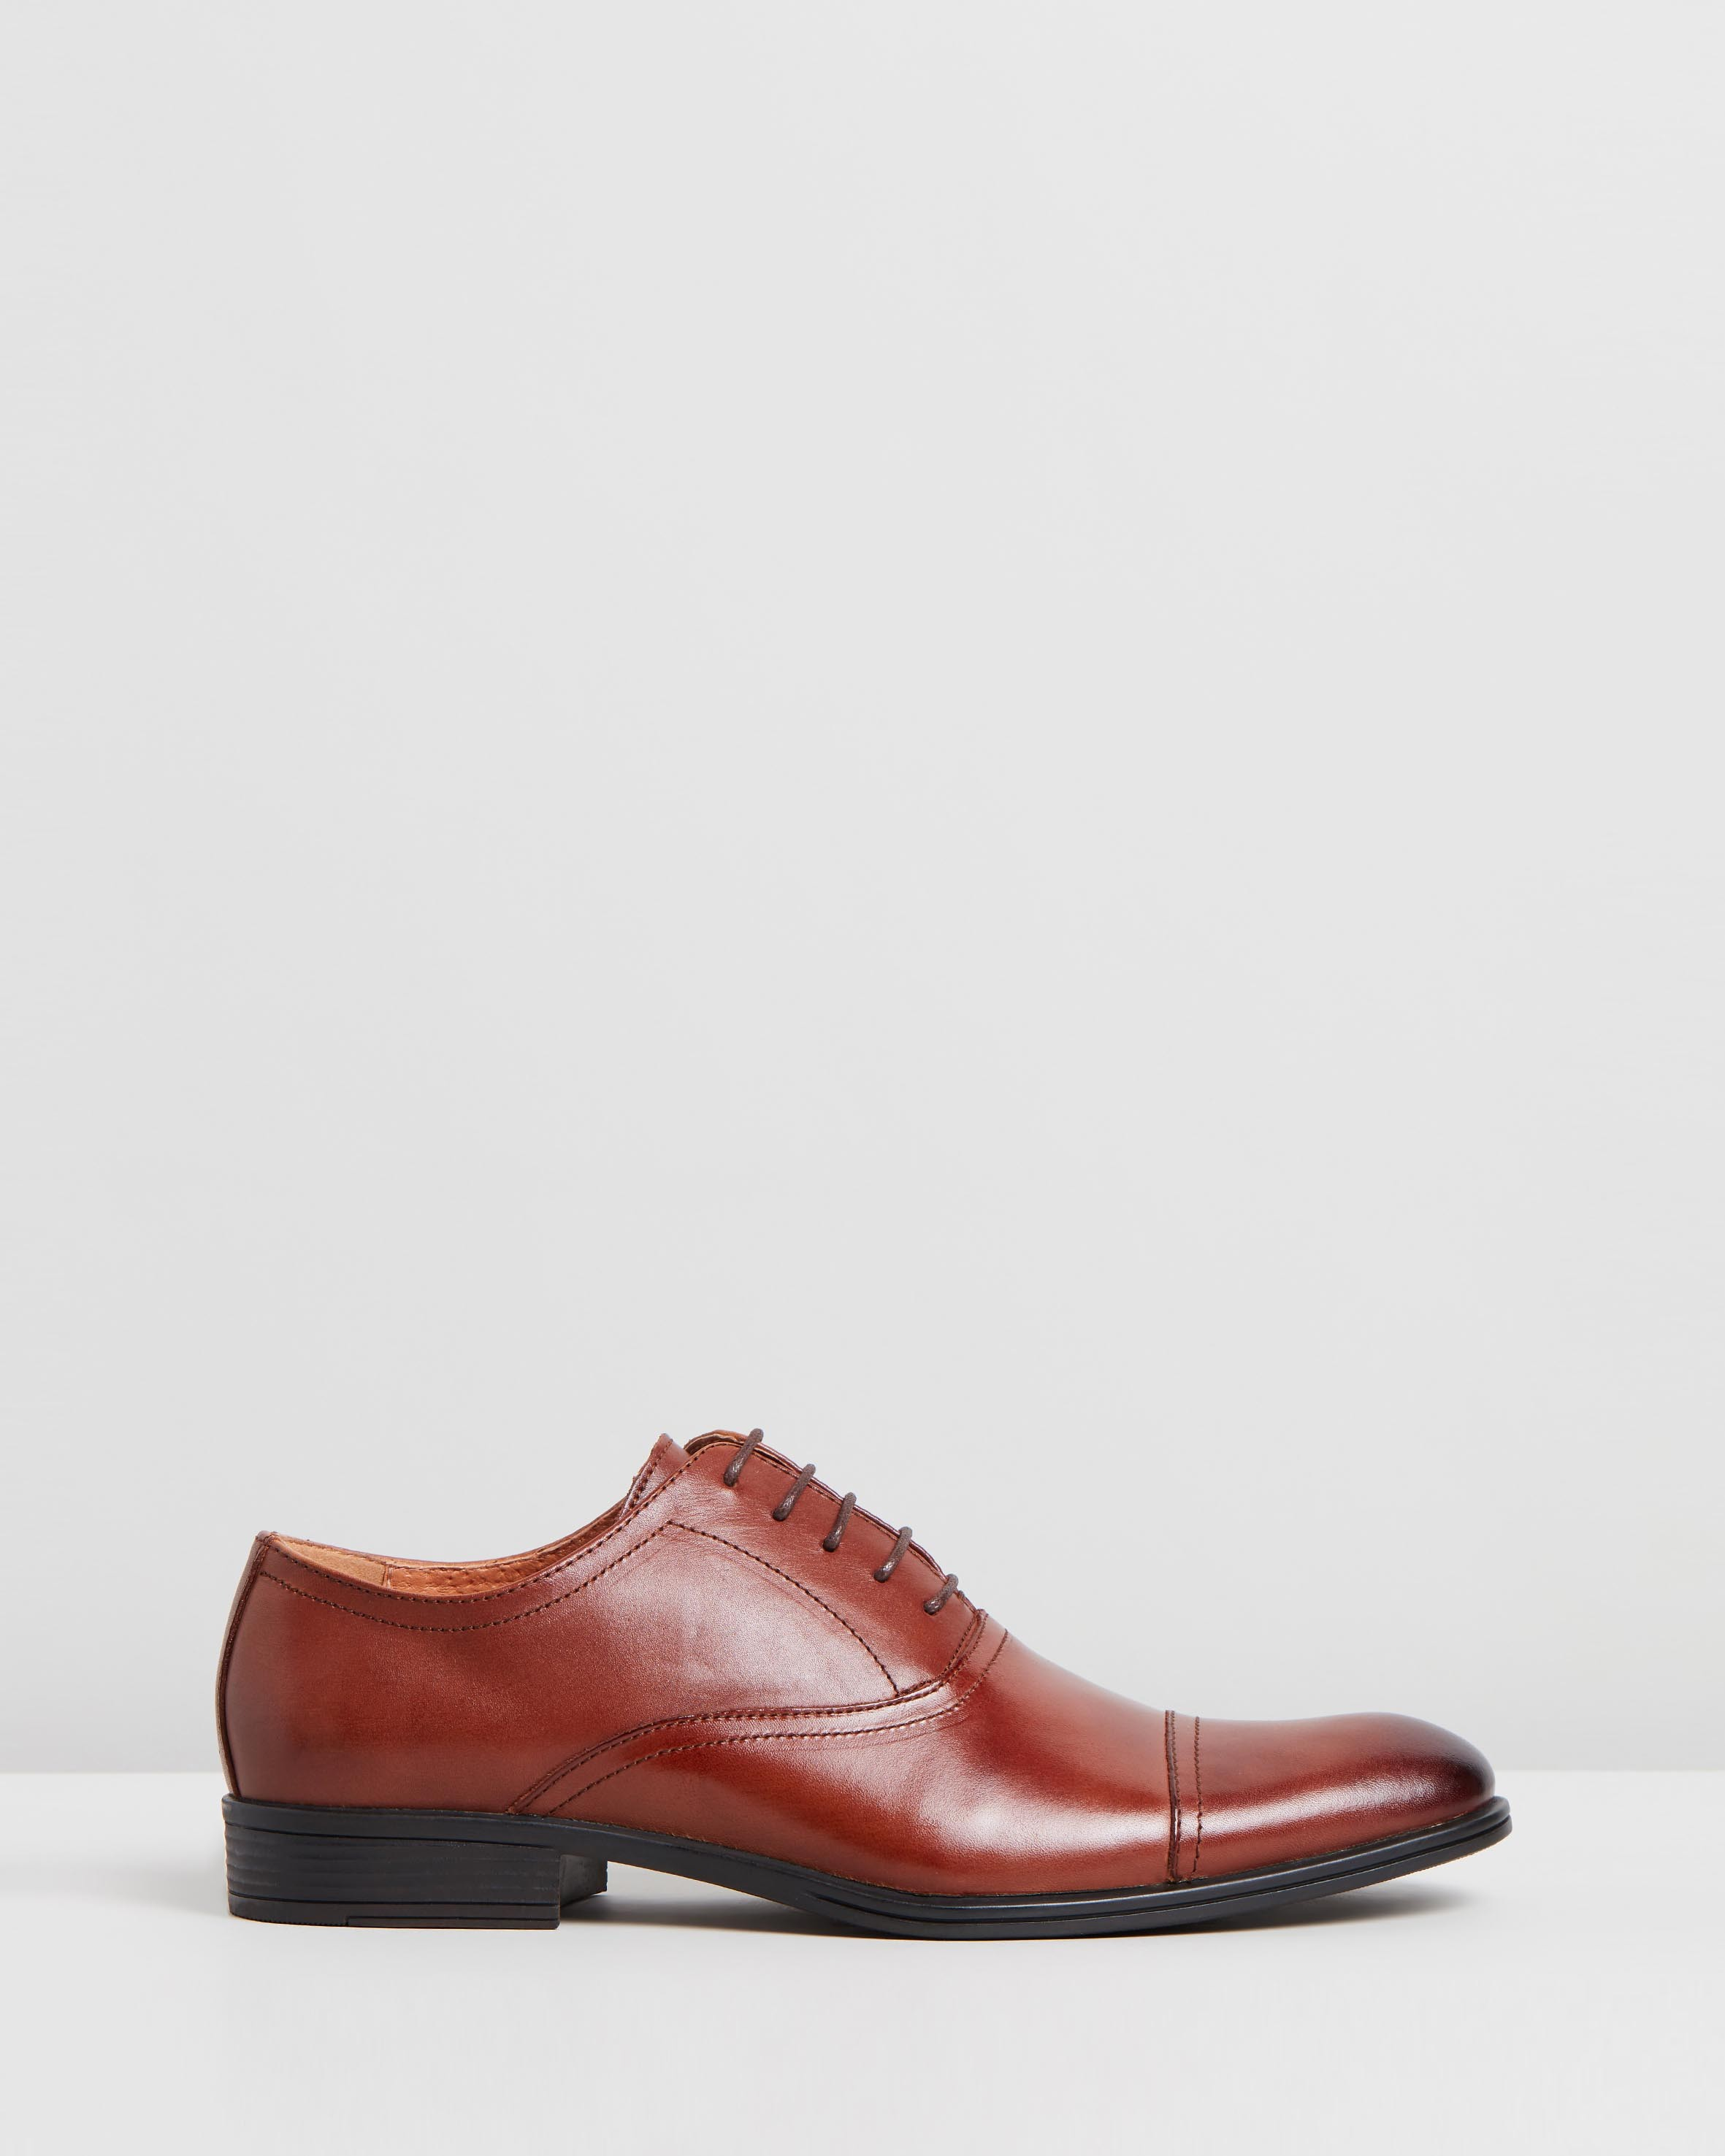 Accolade Oxford Performance Shoes Tan